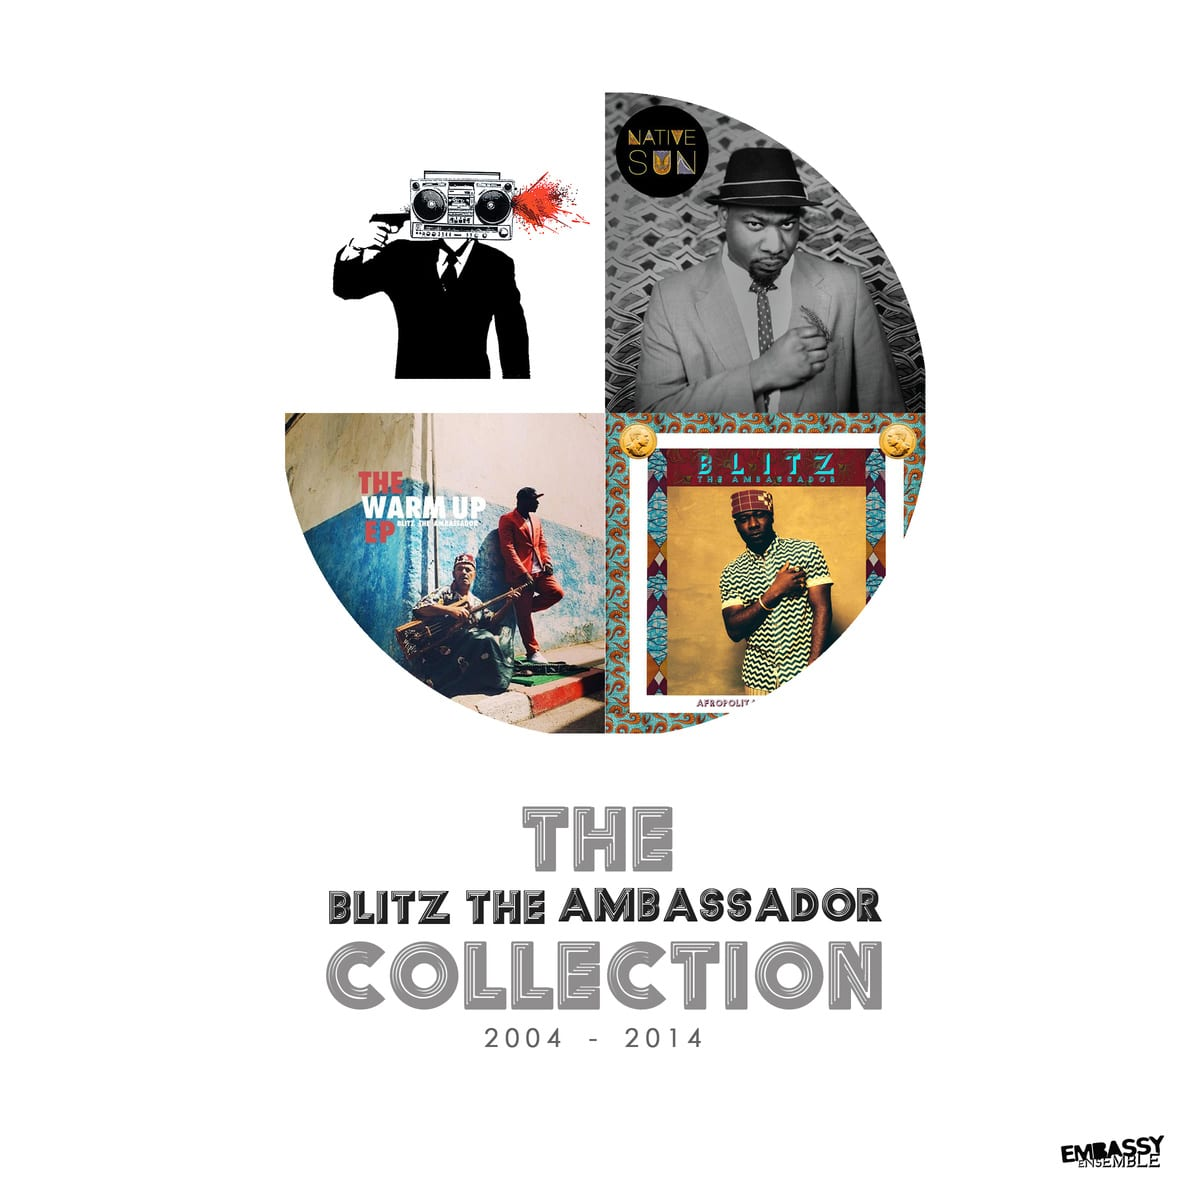 Blitz-the-Ambassador